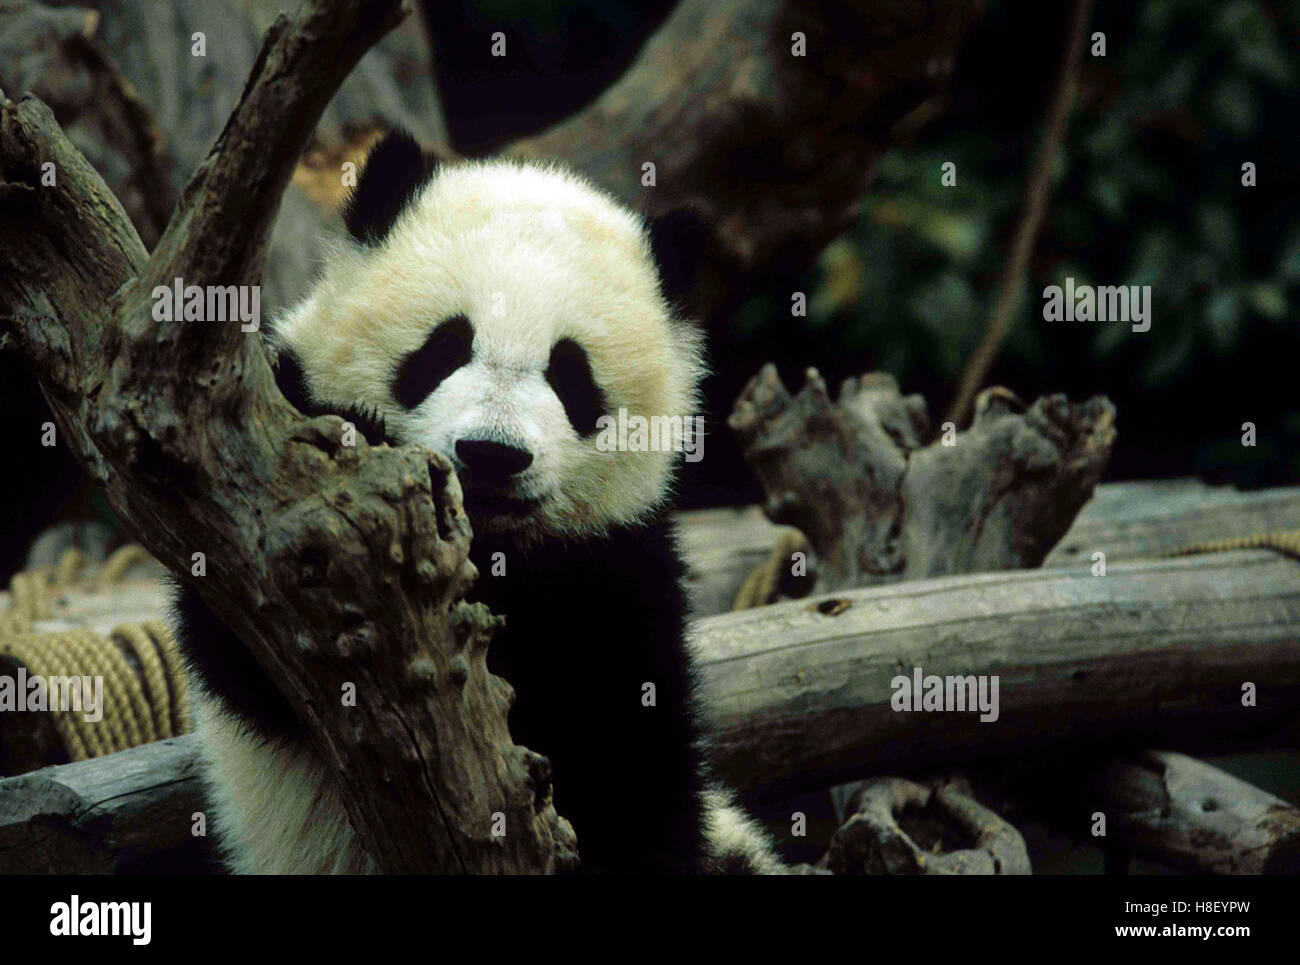 Cute Panda cubs playing in Chengdu's panda base research center. - Stock Image